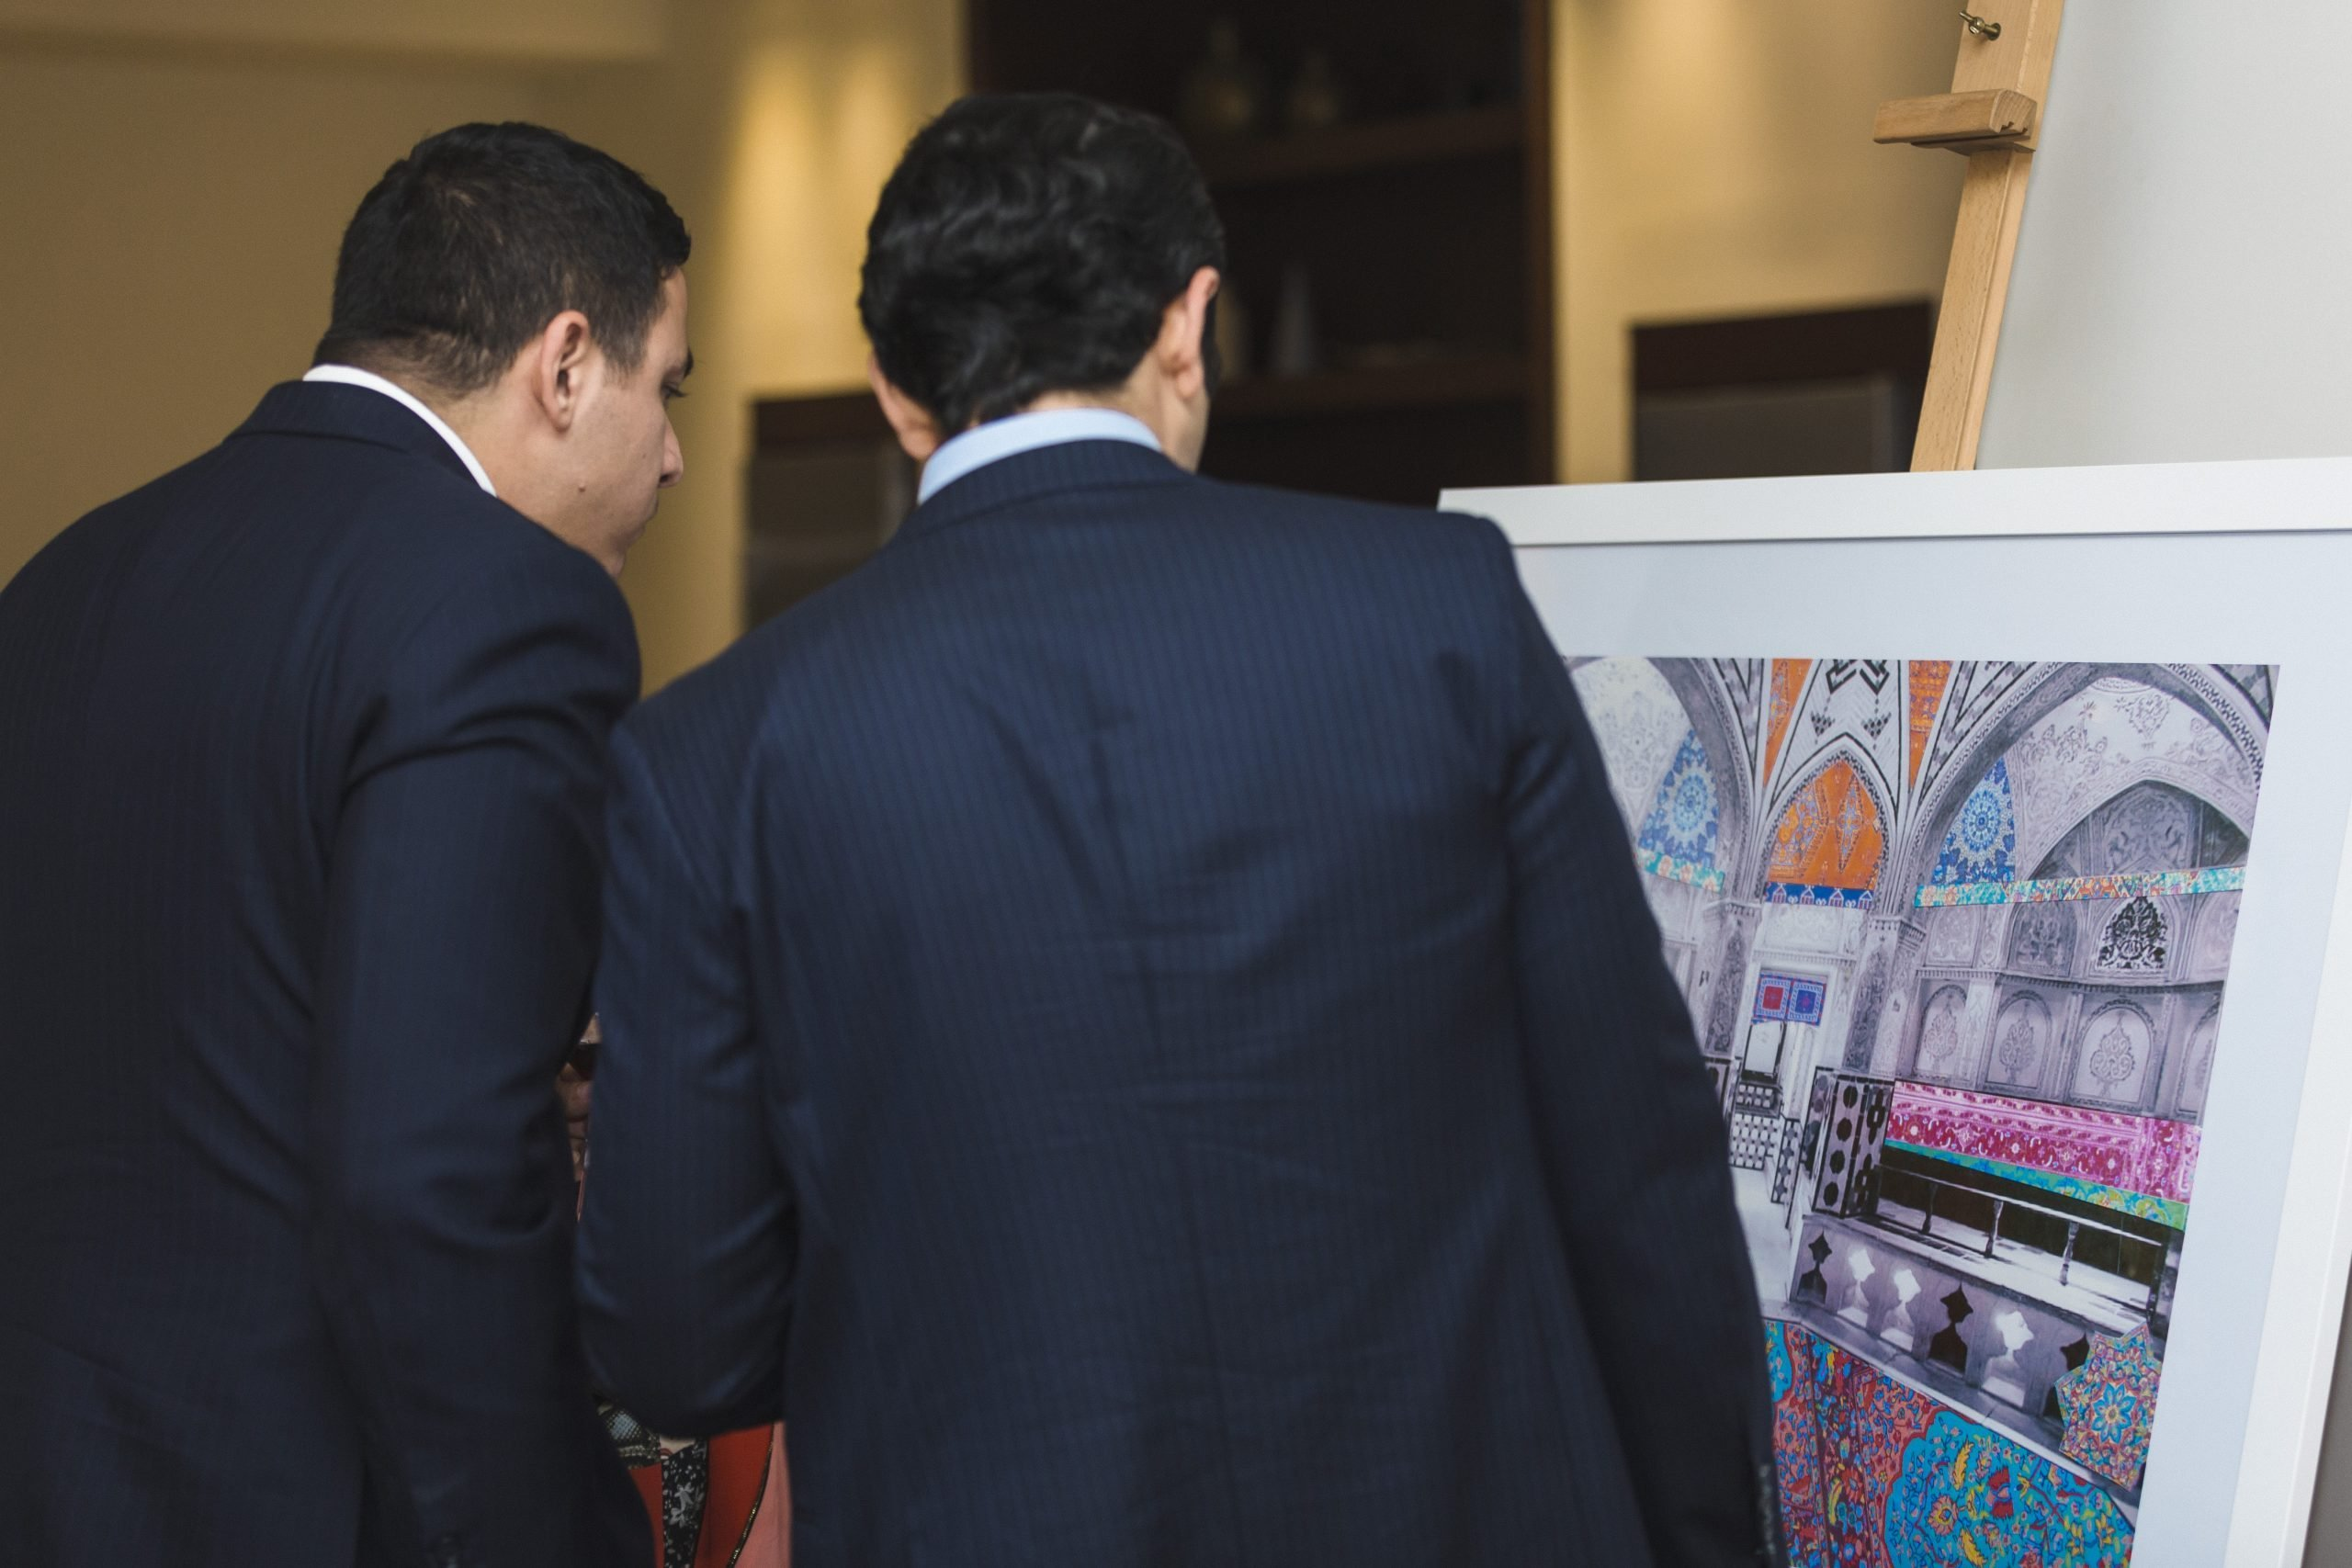 Emergeast collectors viewing Kashan from The Real Me series by Iranian artist Sassan Behnam-Bakhtiar